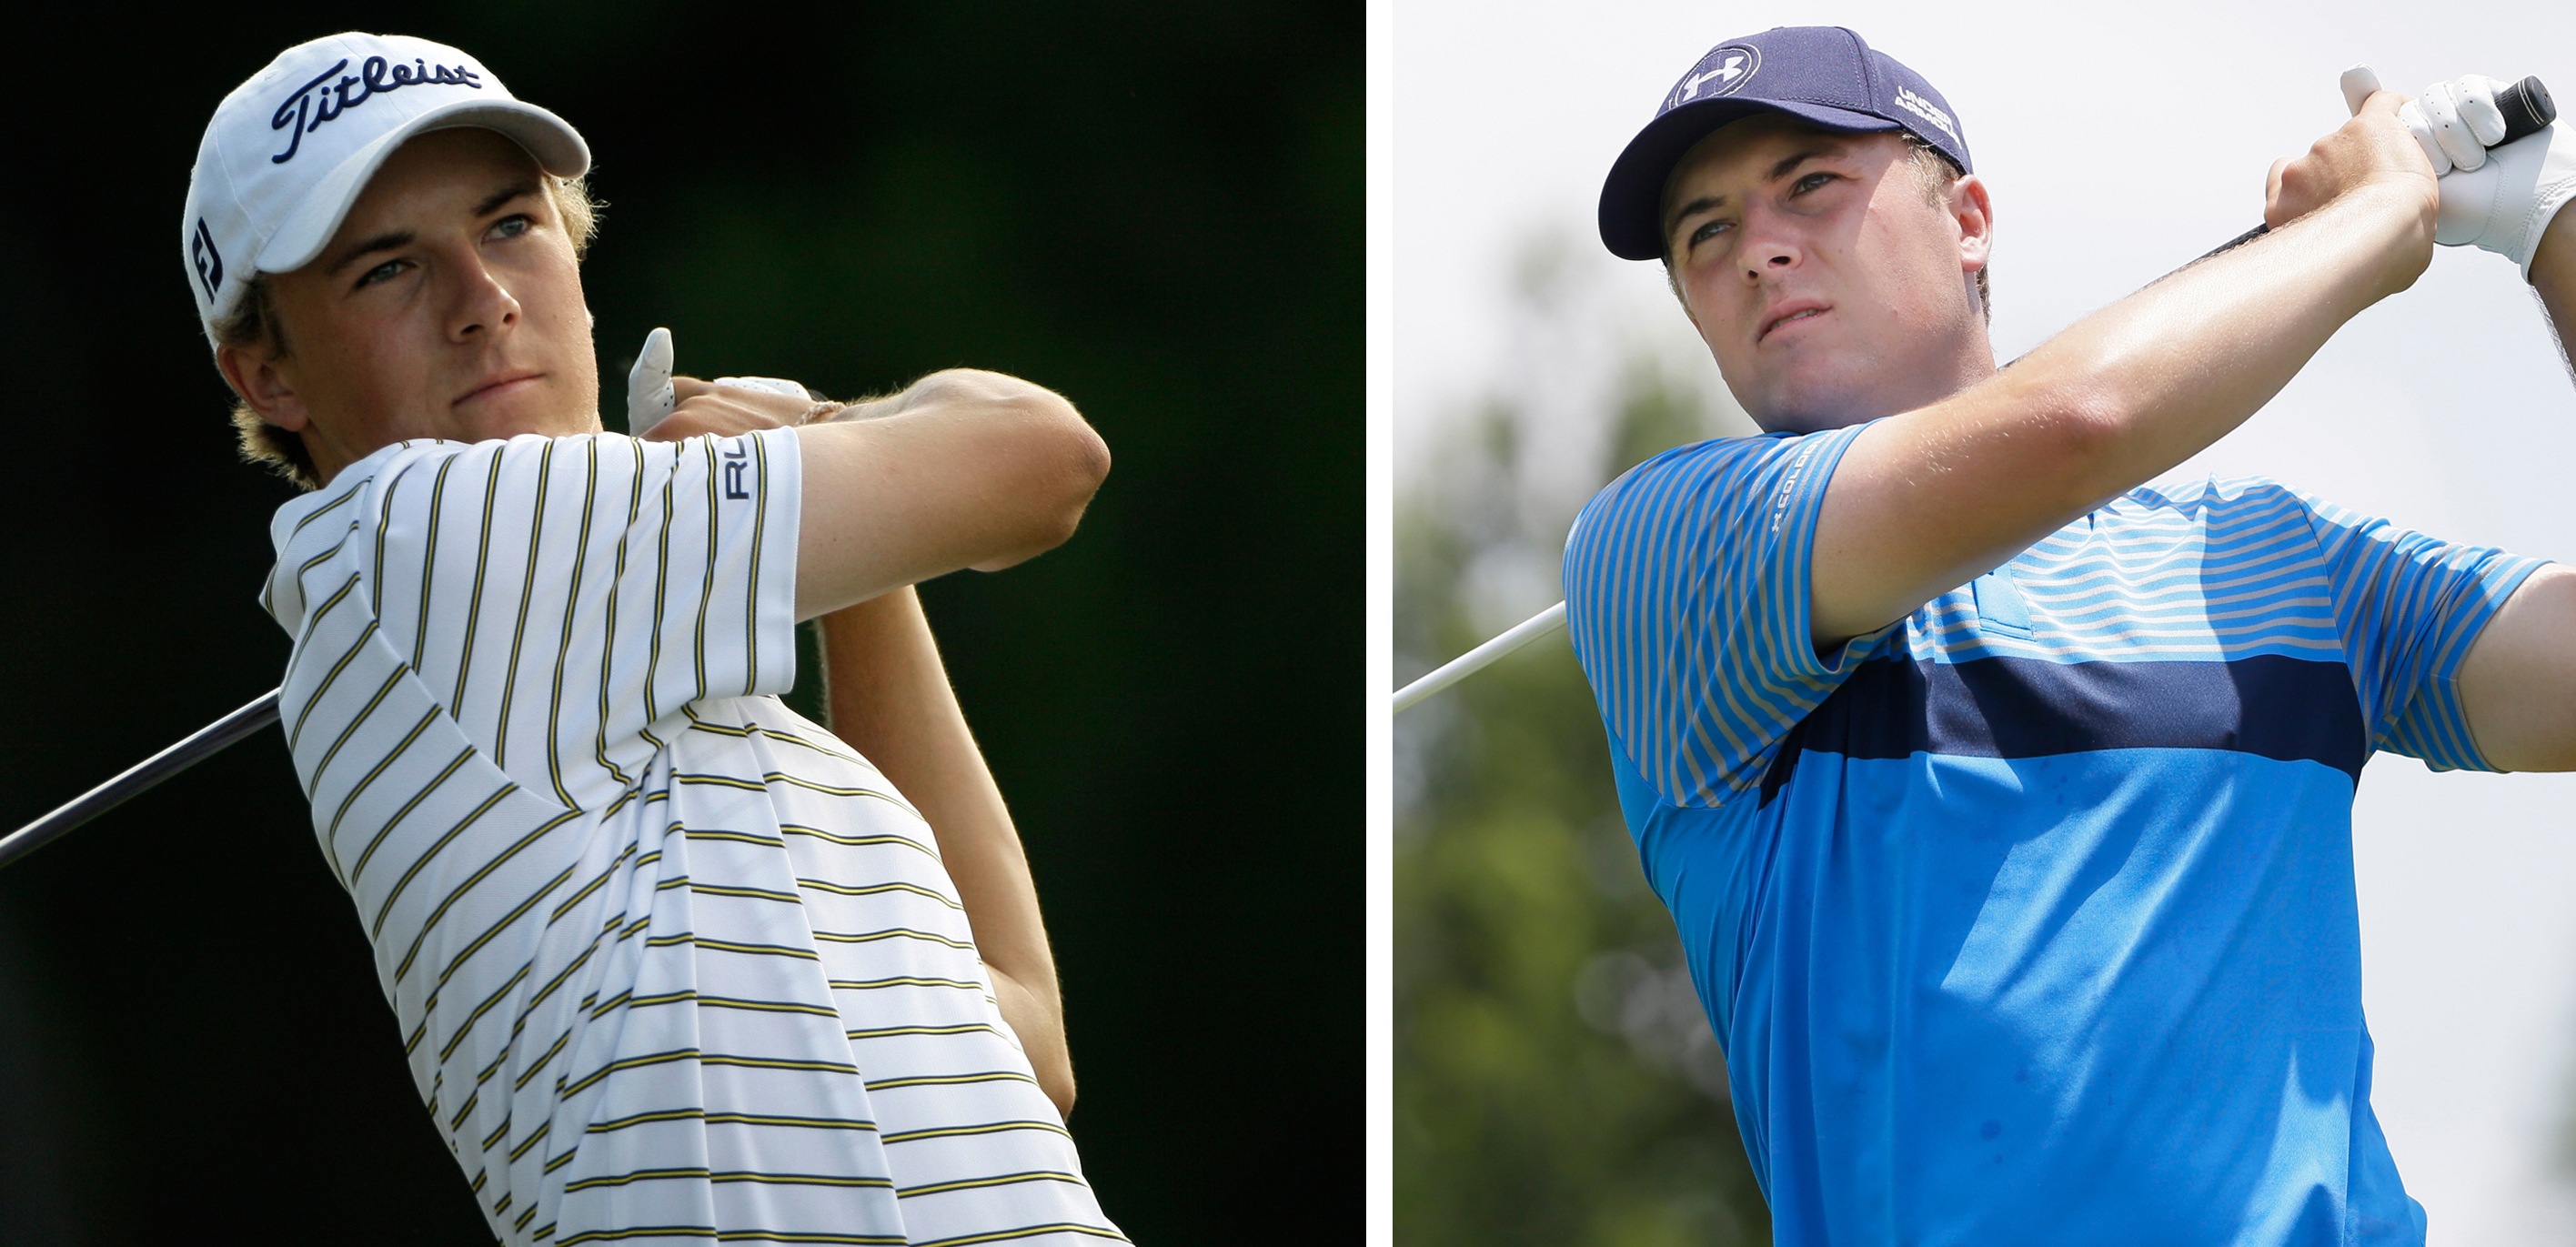 FILE - At left, in a May 20, 2010, file photo, Jordan Spieth, 16, a junior at Jesuit College Preparatory School in Dallas, watches his shot off the 12th tee during the first round of the Byron Nelson golf tournament in Irving, Texas. At right, in a May 28